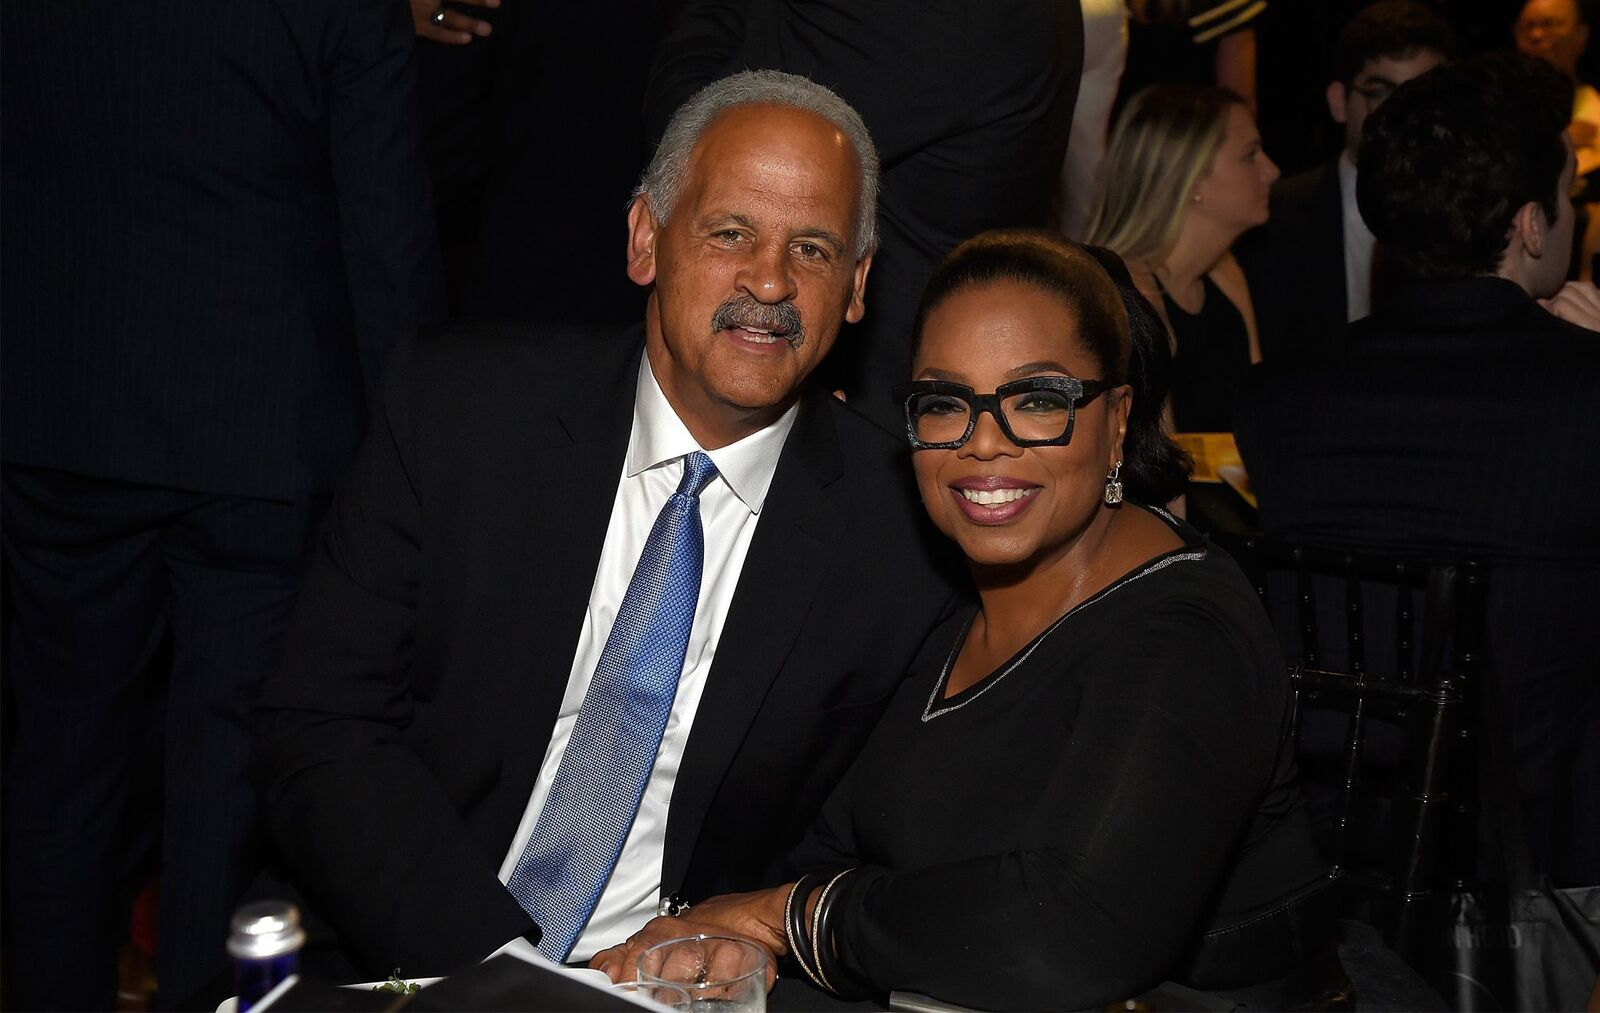 Stedman Graham and Oprah Winfrey at The Robin Hood Foundation's benefit on May 14, 2018, in New York City | Photo: Getty Images